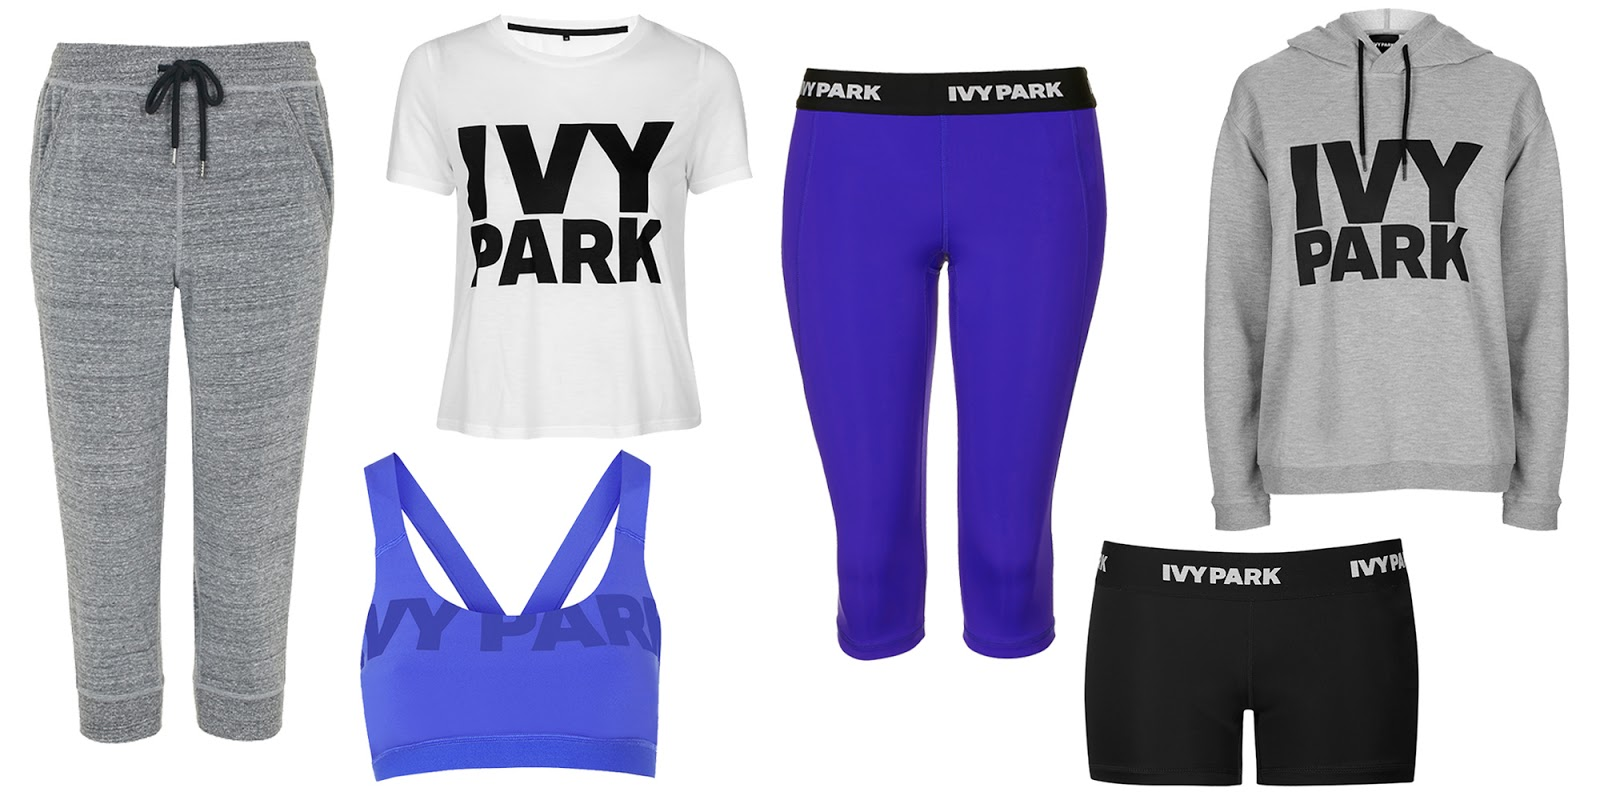 Ivy Park size guide